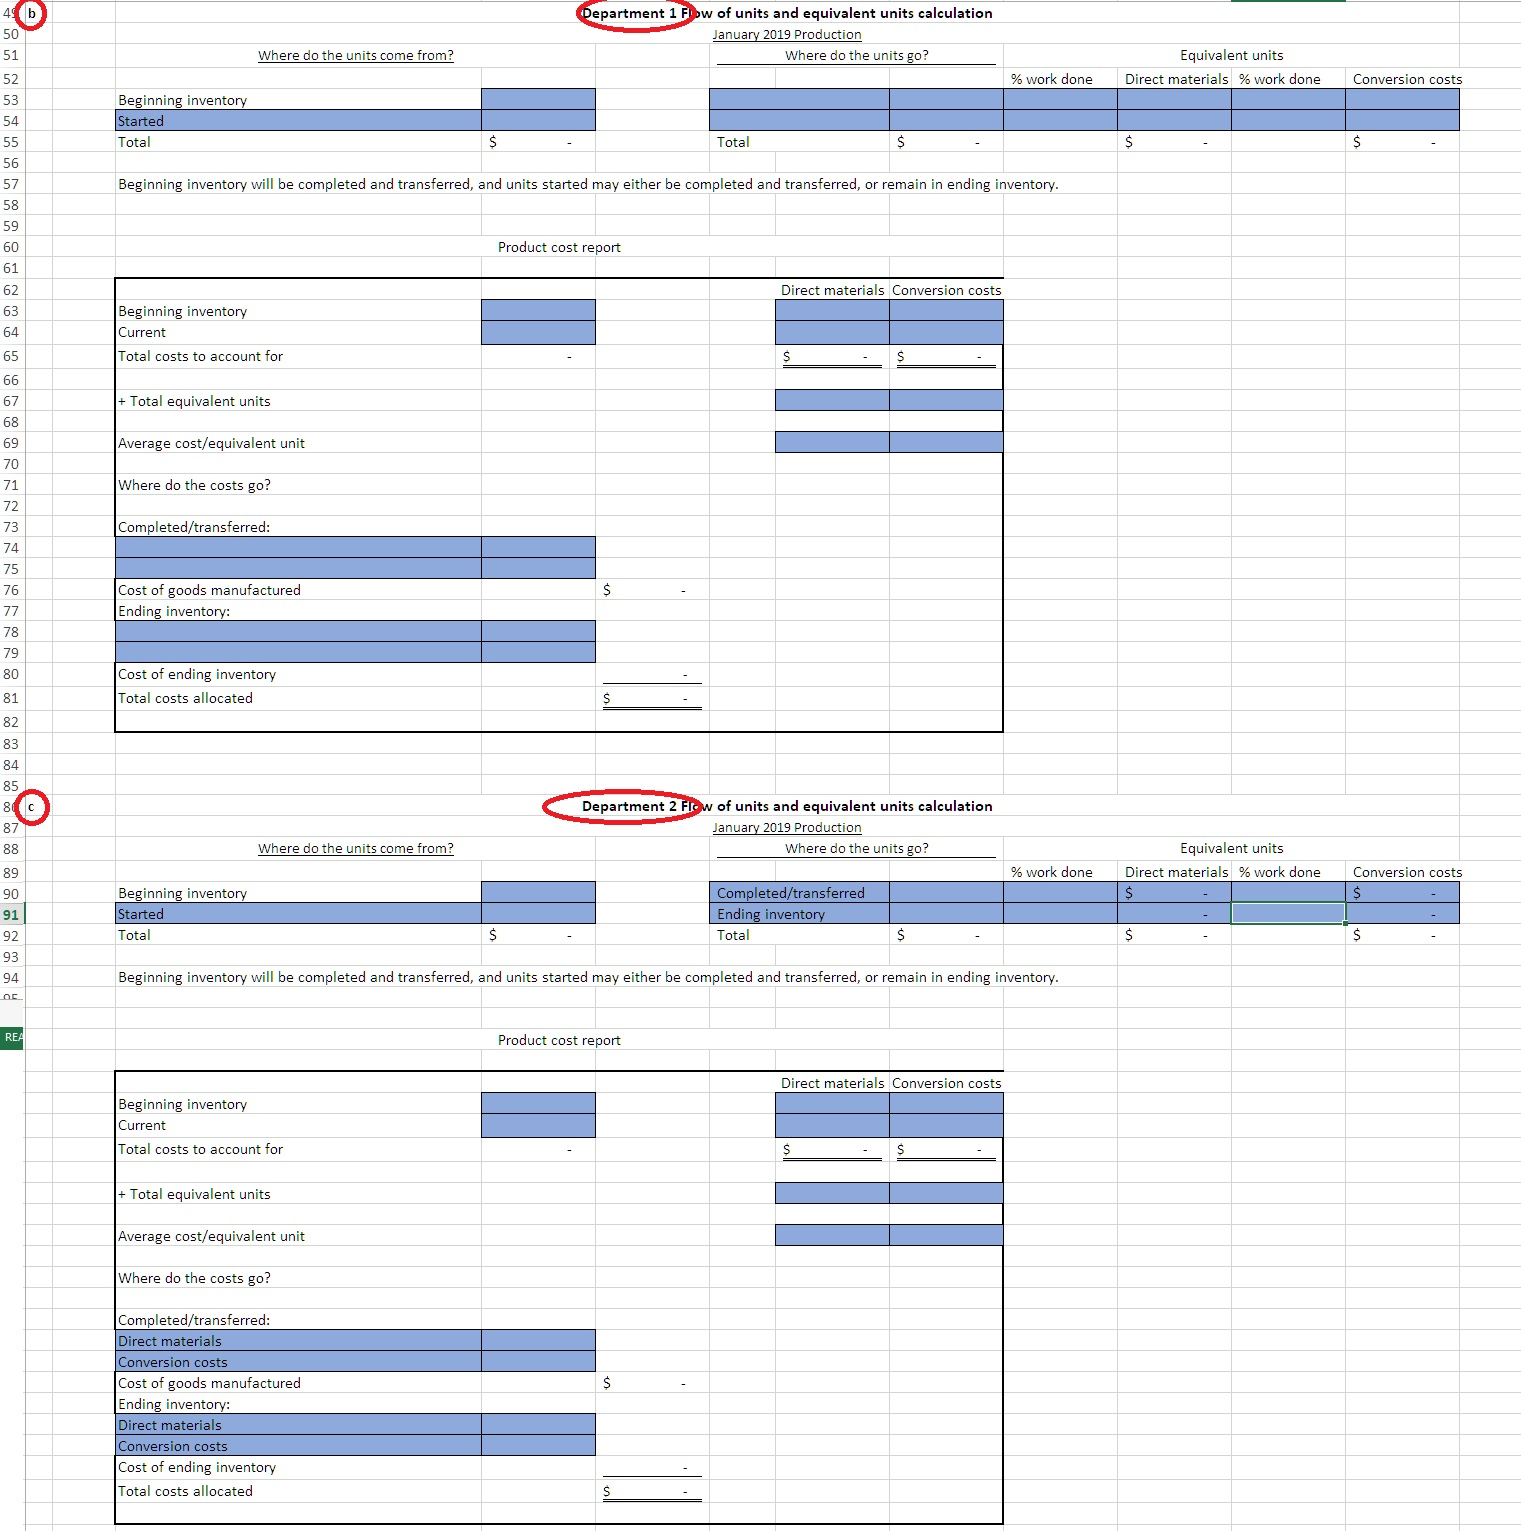 49 b 50 Department 1 Fow of units and equivalent units calculation January 2019 Production Where do the units come from? Where do the units go? Equivalent units 51 % work done Direct materials % work done 52 Conversion costs Beginning inventory Started Total 53 54 $ $ Total 55 56 Beginning inventory will be completed and transferred, and units started may either be completed and transferred, or remain in ending inventory. 57 58 59 Product cost report 60 61 Direct materials Conversion costs 62 Beginning inventory 63 64 Current Total costs to account for $ 65 66 Total equivalent units 67 68 Average cost/equivalent unit 69 70 Where do the costs go? 71 72 Completed/transferred: 73 74 75 Cost of goods manufactured Ending inventory: 76 77 78 79 Cost of ending inventory Total costs allocated 80 81 82 83 84 85 Department 2 Fw of units and equivalent units calculation January 2019 Production 8 c 87 Where do the units go? Equivalent units Where do the units come from? 88 Direct materials % work done % work done Conversion costs 89 Beginning inventory Started Completed/transferred $ 90 Ending inventory 91 $ $ Total Total 92 93 Beginning inventory will be completed and transferred, and units started may either be completed and transferred, or remain in ending inventory. 94 RE Product cost report Direct materials Conversion costs Beginning inventory Current Total costs to account for Total equivalent units Average cost/equivalent unit Where do the costs go? Completed/transferred: Direct materials Conversion costs Cost of goods manufactured Ending inventory: Direct materials Conversion costs $ Cost of ending inventory Total costs allocated